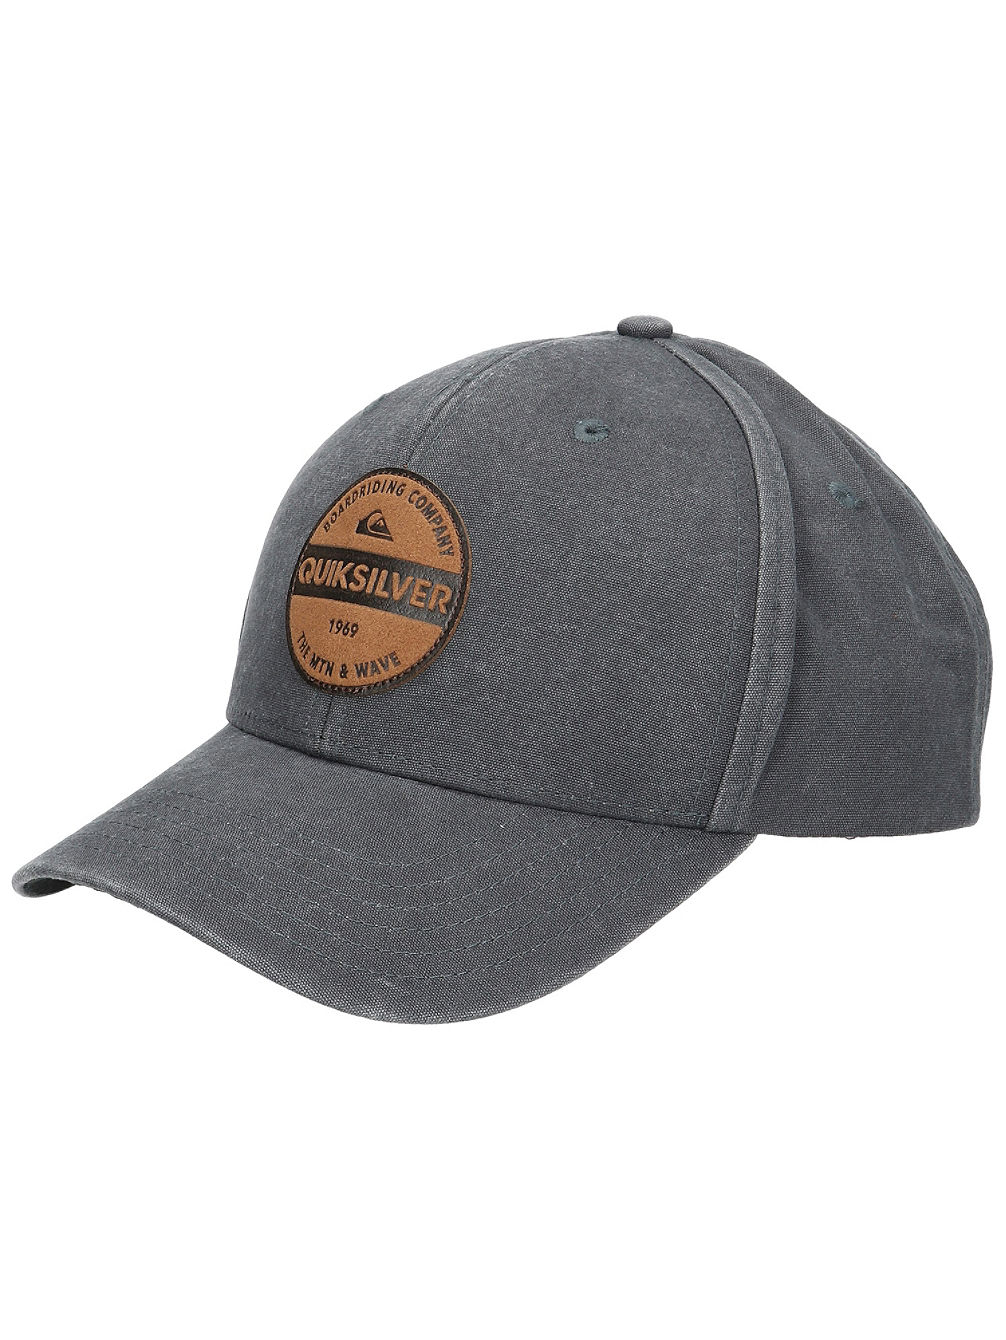 Blues Buster Cap